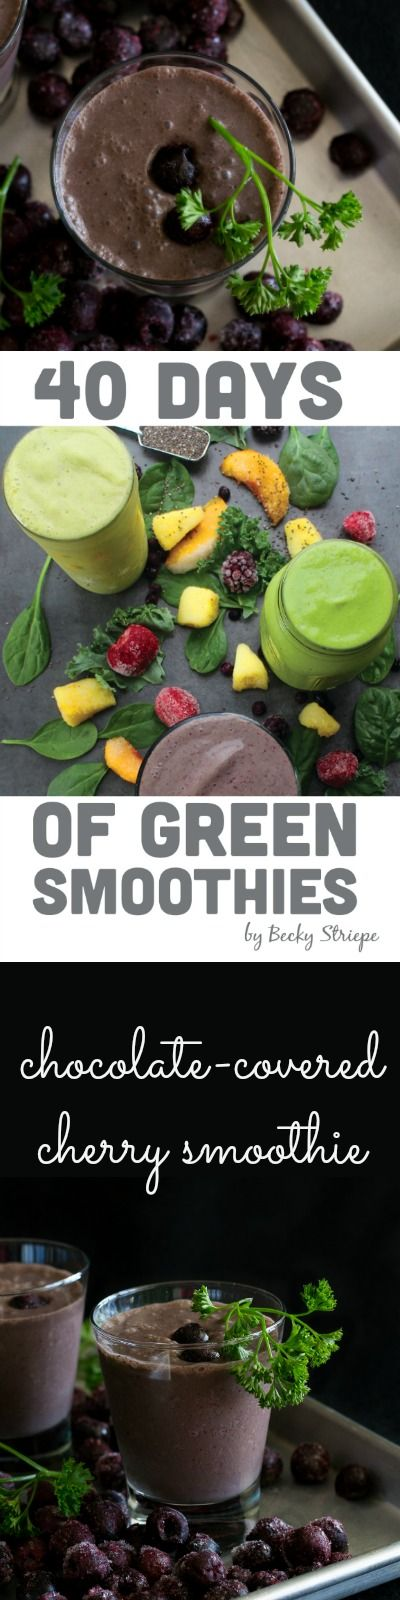 Healthy & delicious Chocolate-covered Cherry Smoothie from 40 Days of Green Smoothies by @glueandglitter. Get the recipe at An Unrefined Vegan.